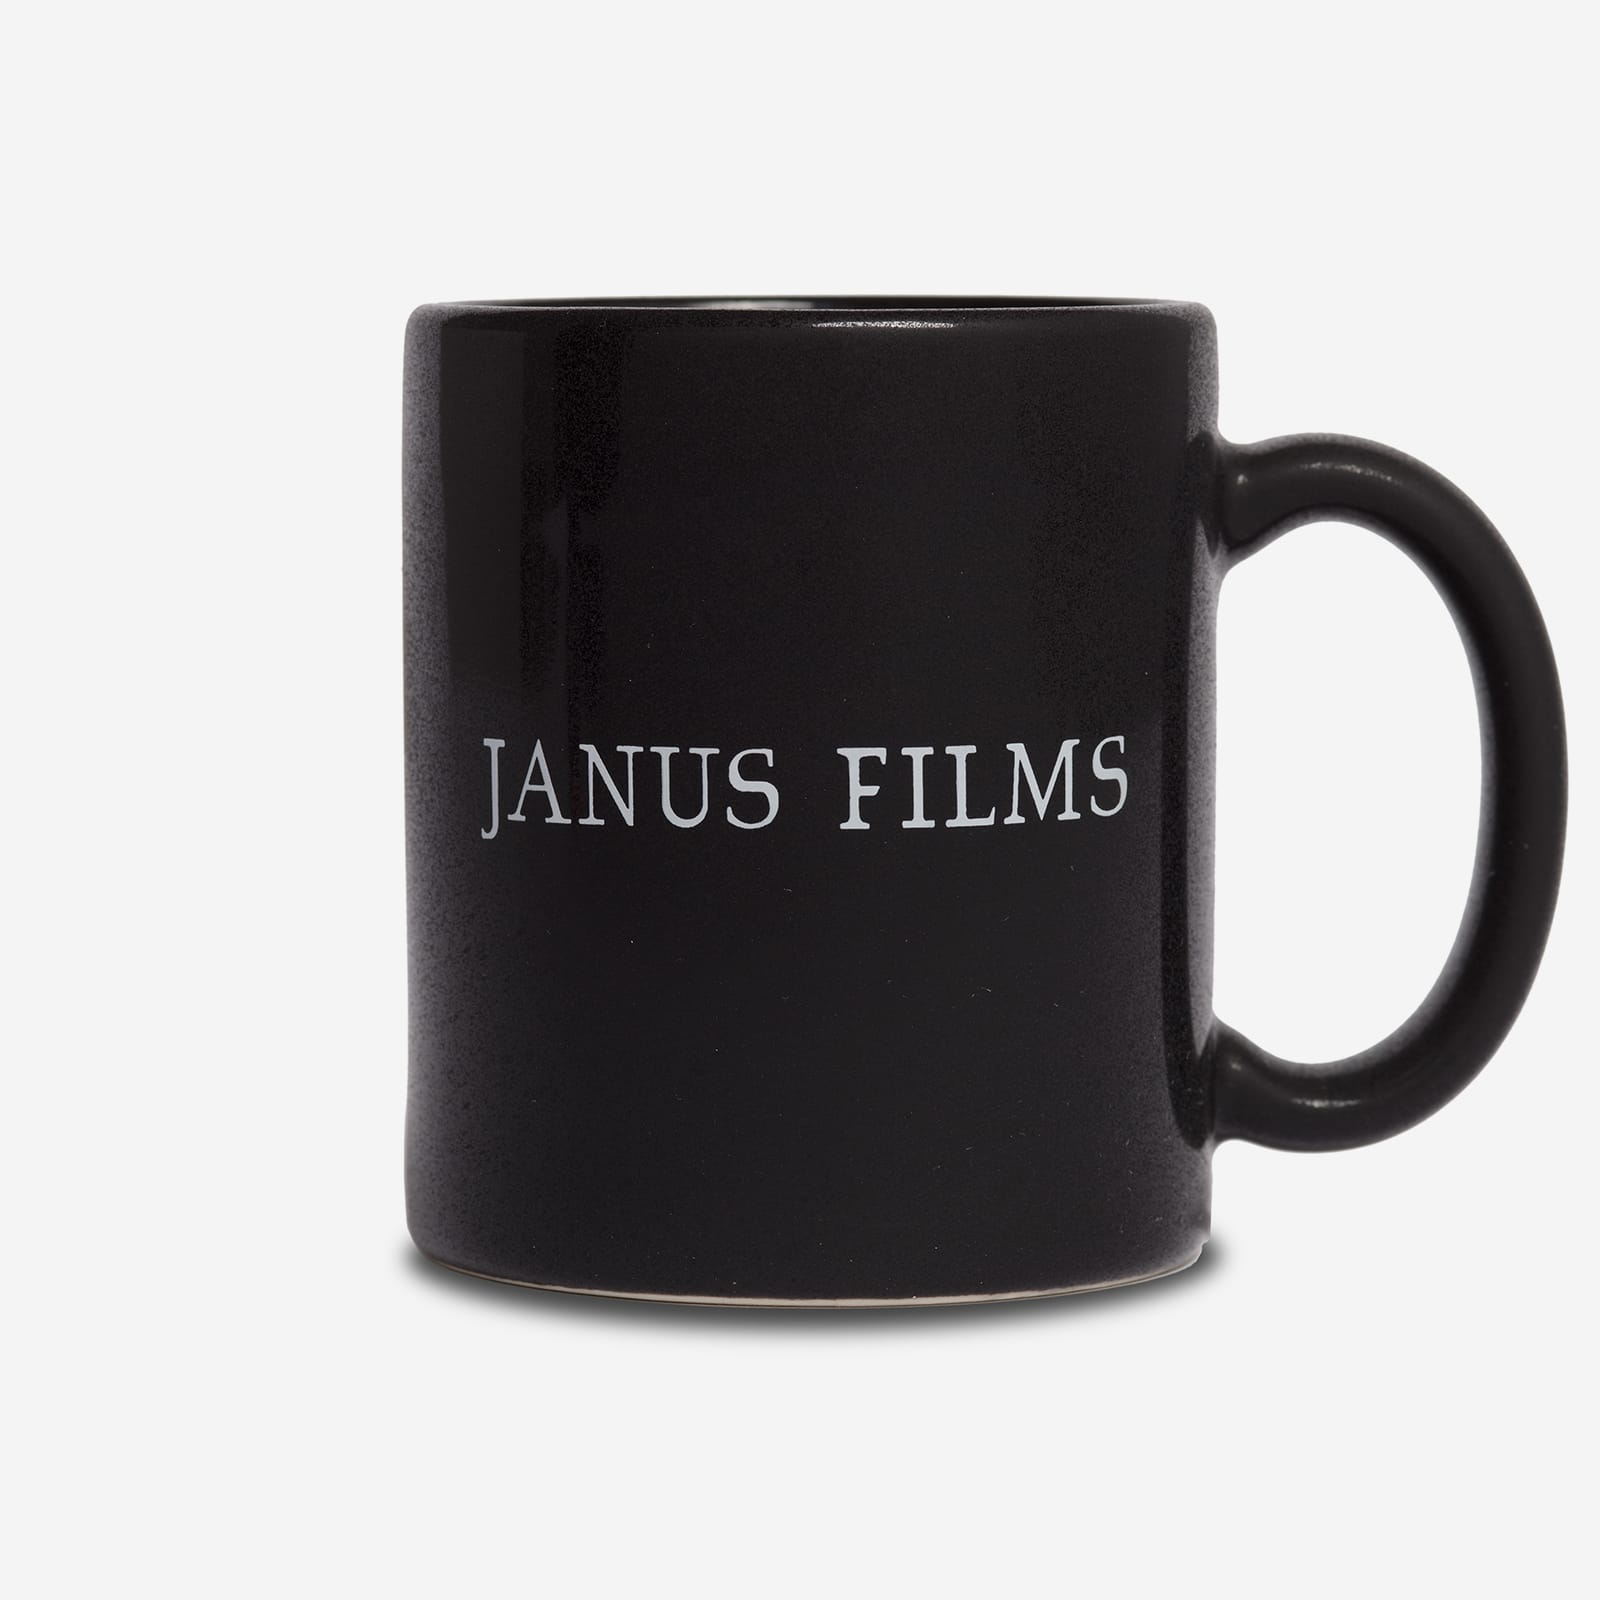 Janus Films Coffee Mug